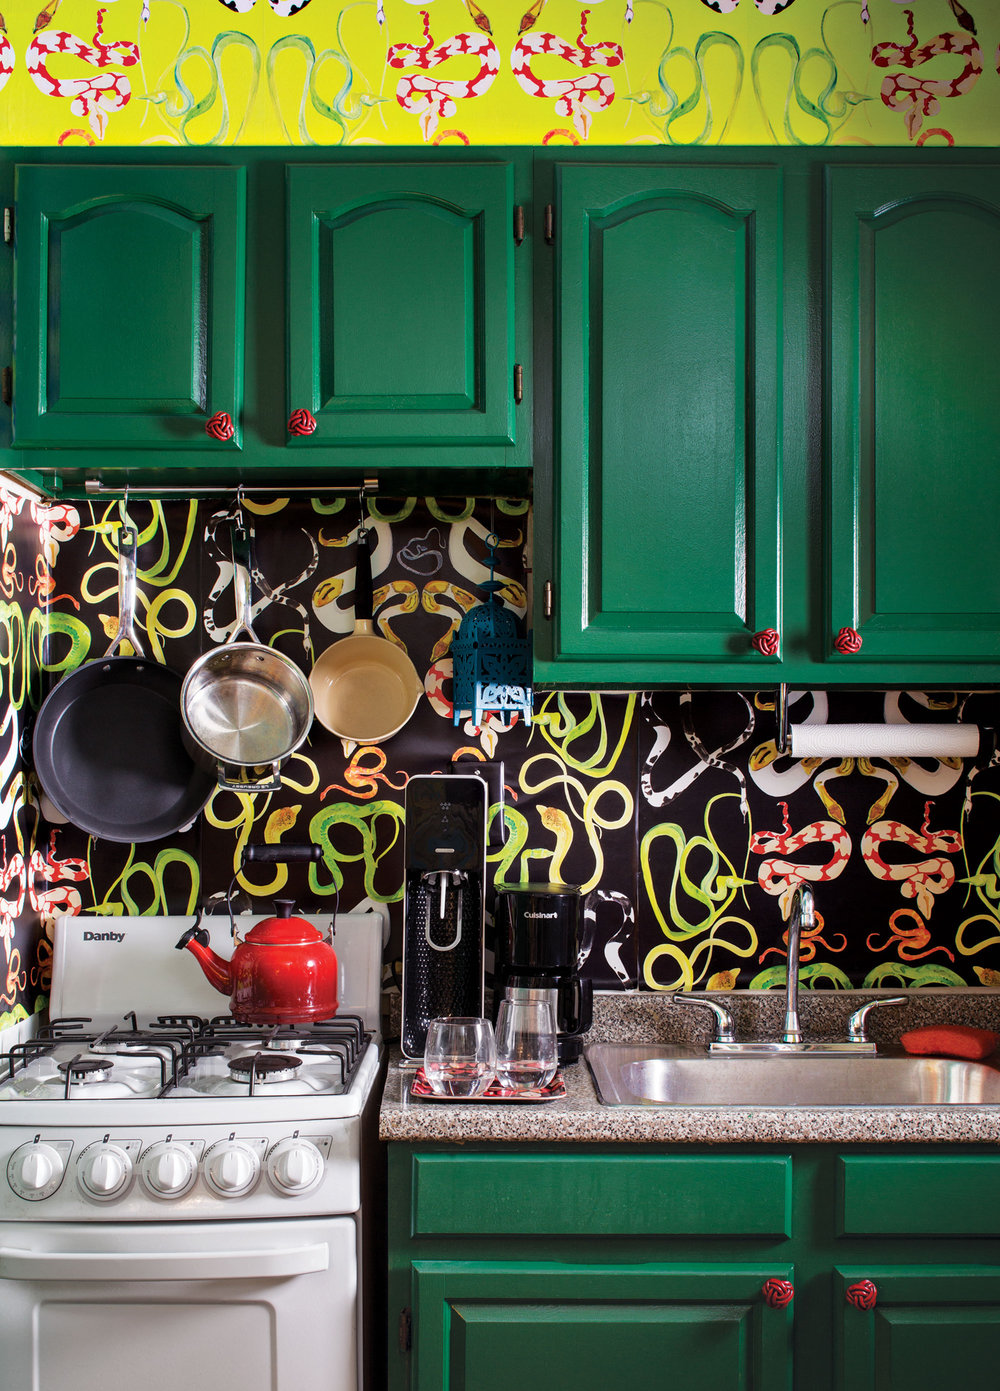 Snake print wallpaper in kitchen | Design by  George Venson  via:  The Cut